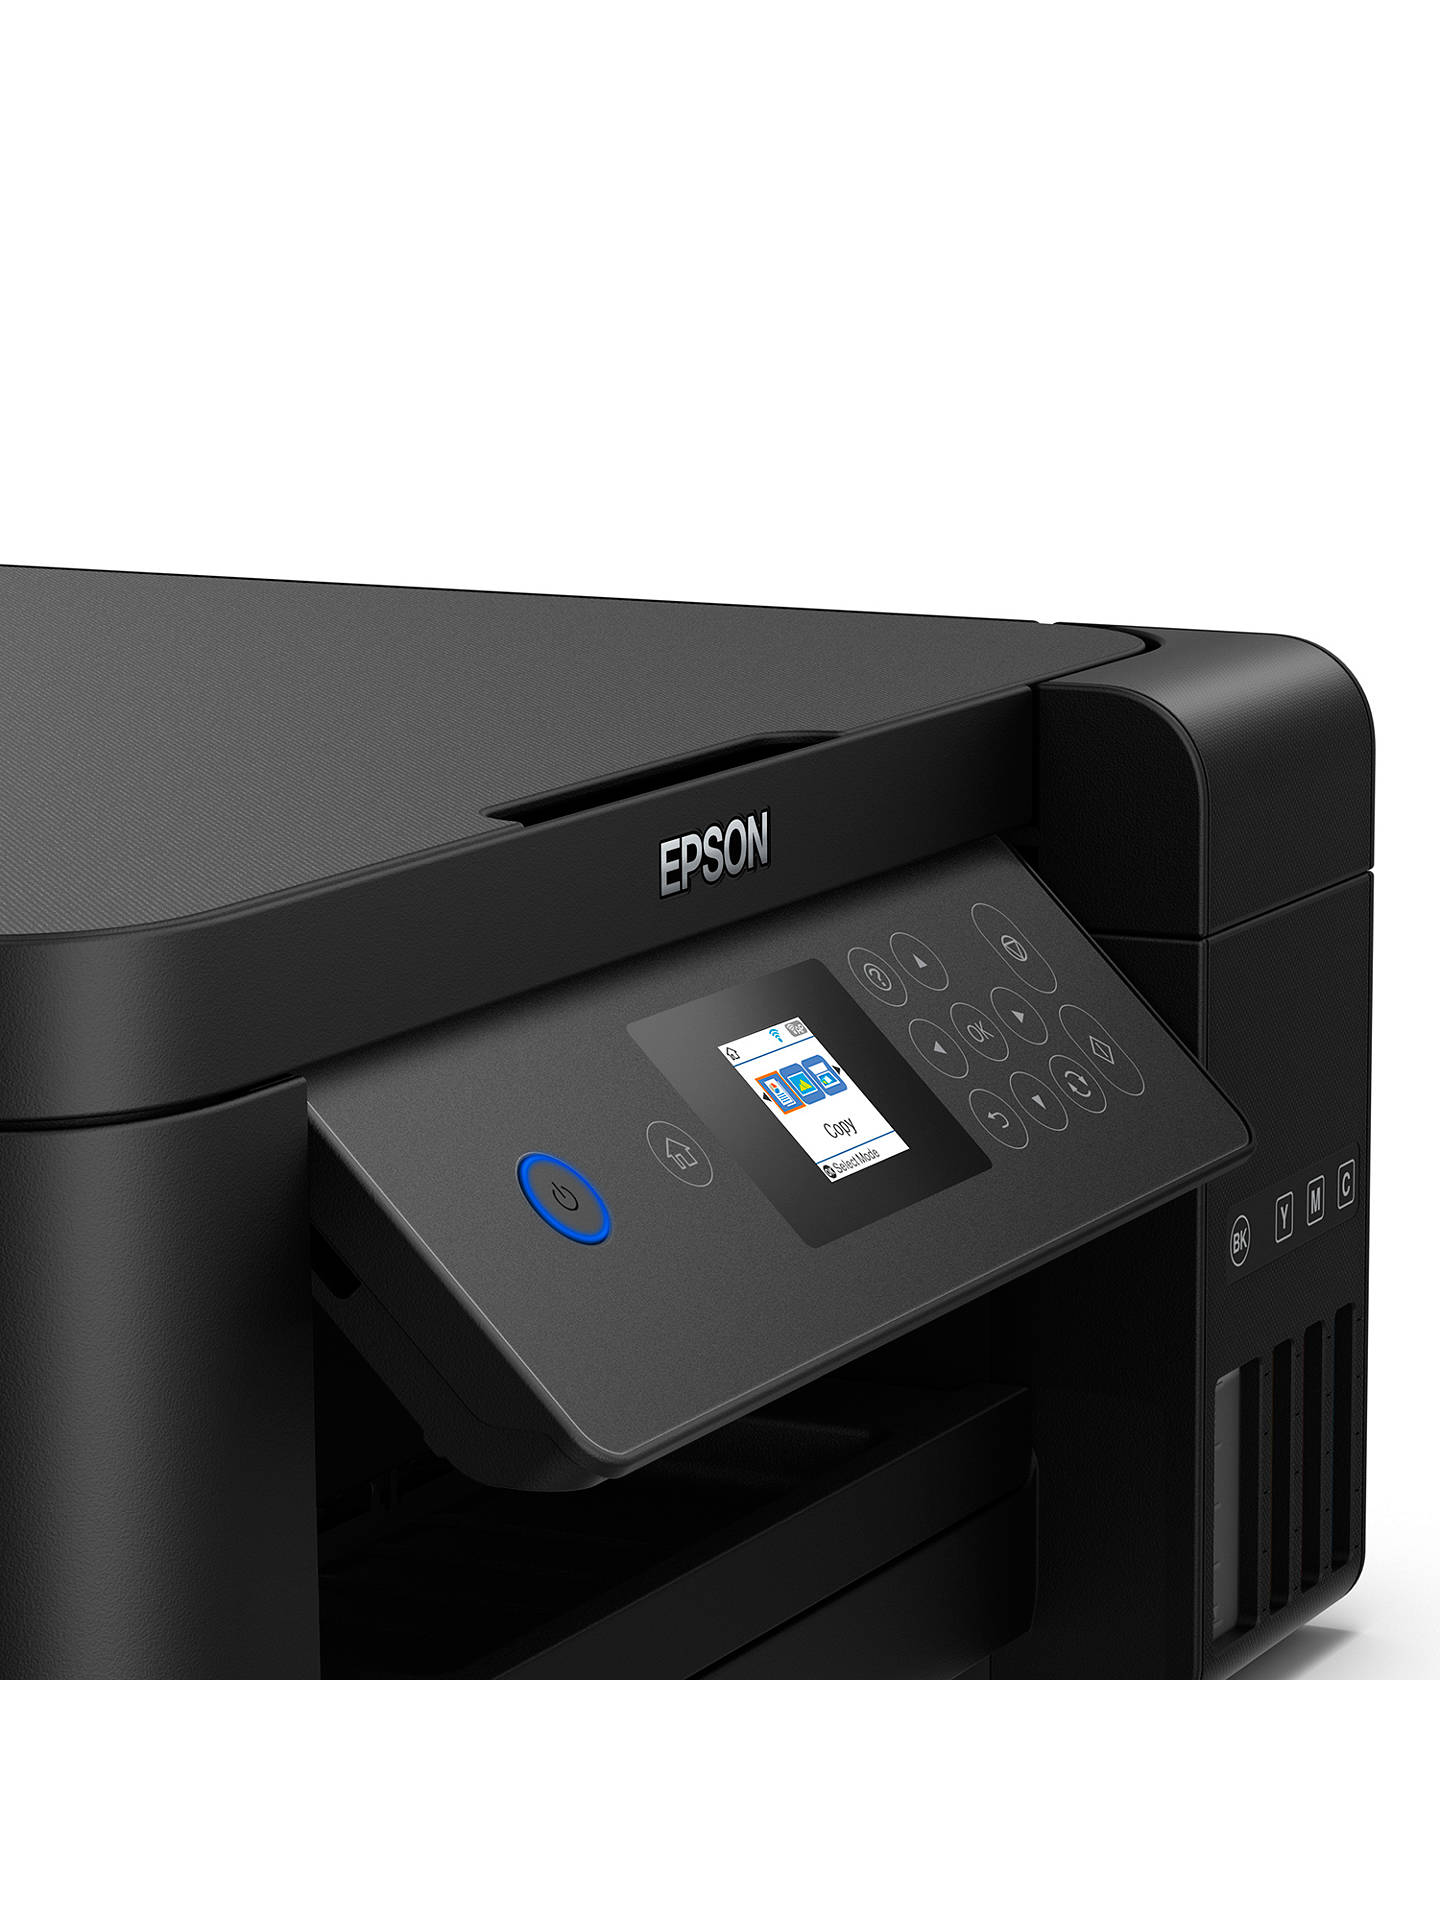 Epson EcoTank ET-2750 Three-In-One Wi-Fi Printer with High Capacity  Integrated Ink Tank System